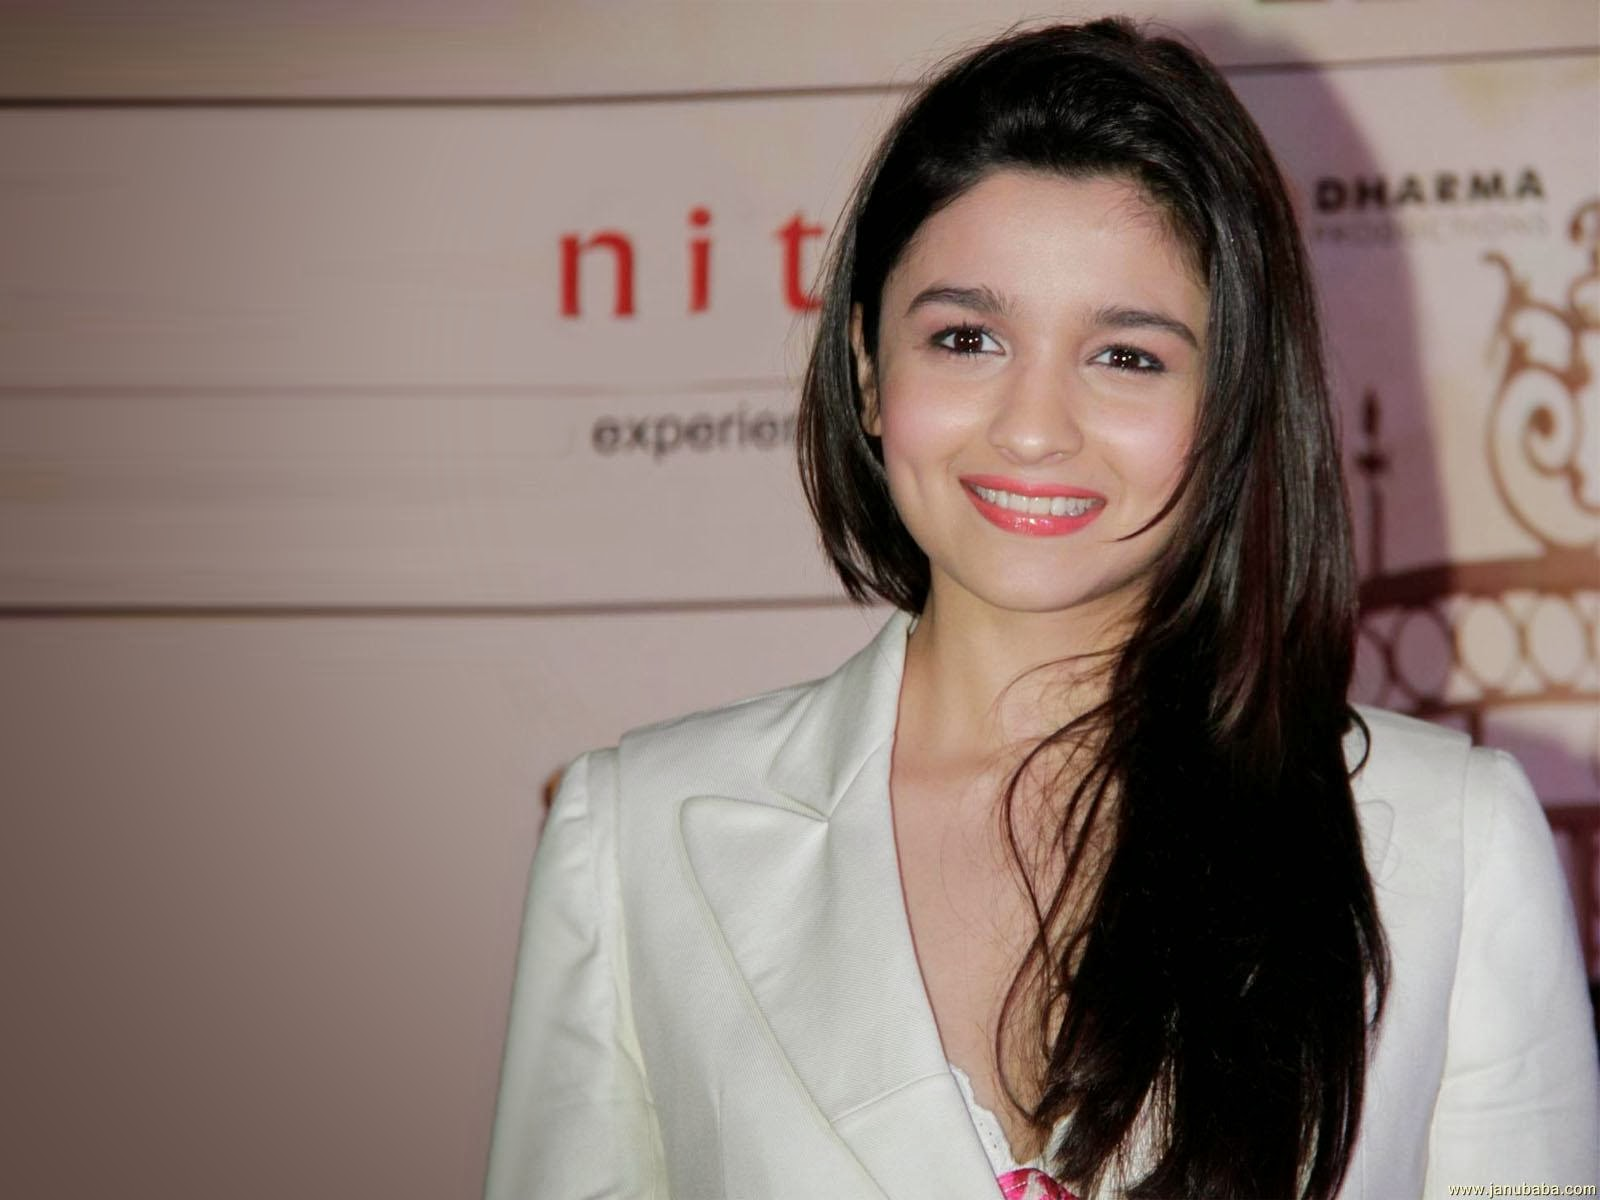 Latest Hd Mobile Wallpapers: Alia Bhatt Hd Wallpaper For